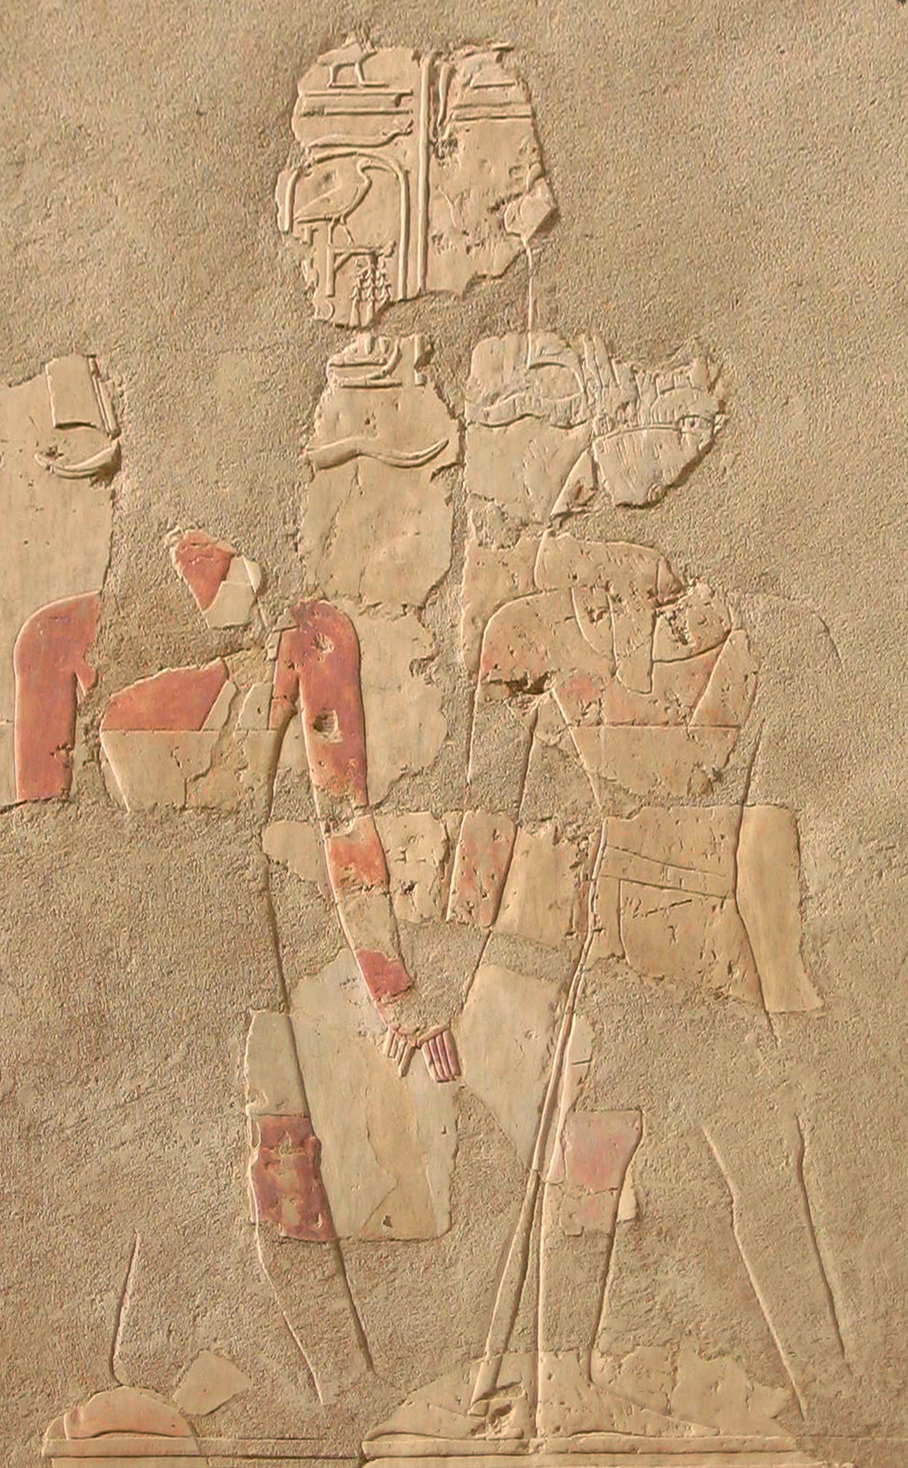 Upper Courtyard, south wall, Hatshepsut leading Tuthmosis III by the hand. Phot. M. Sankiewicz